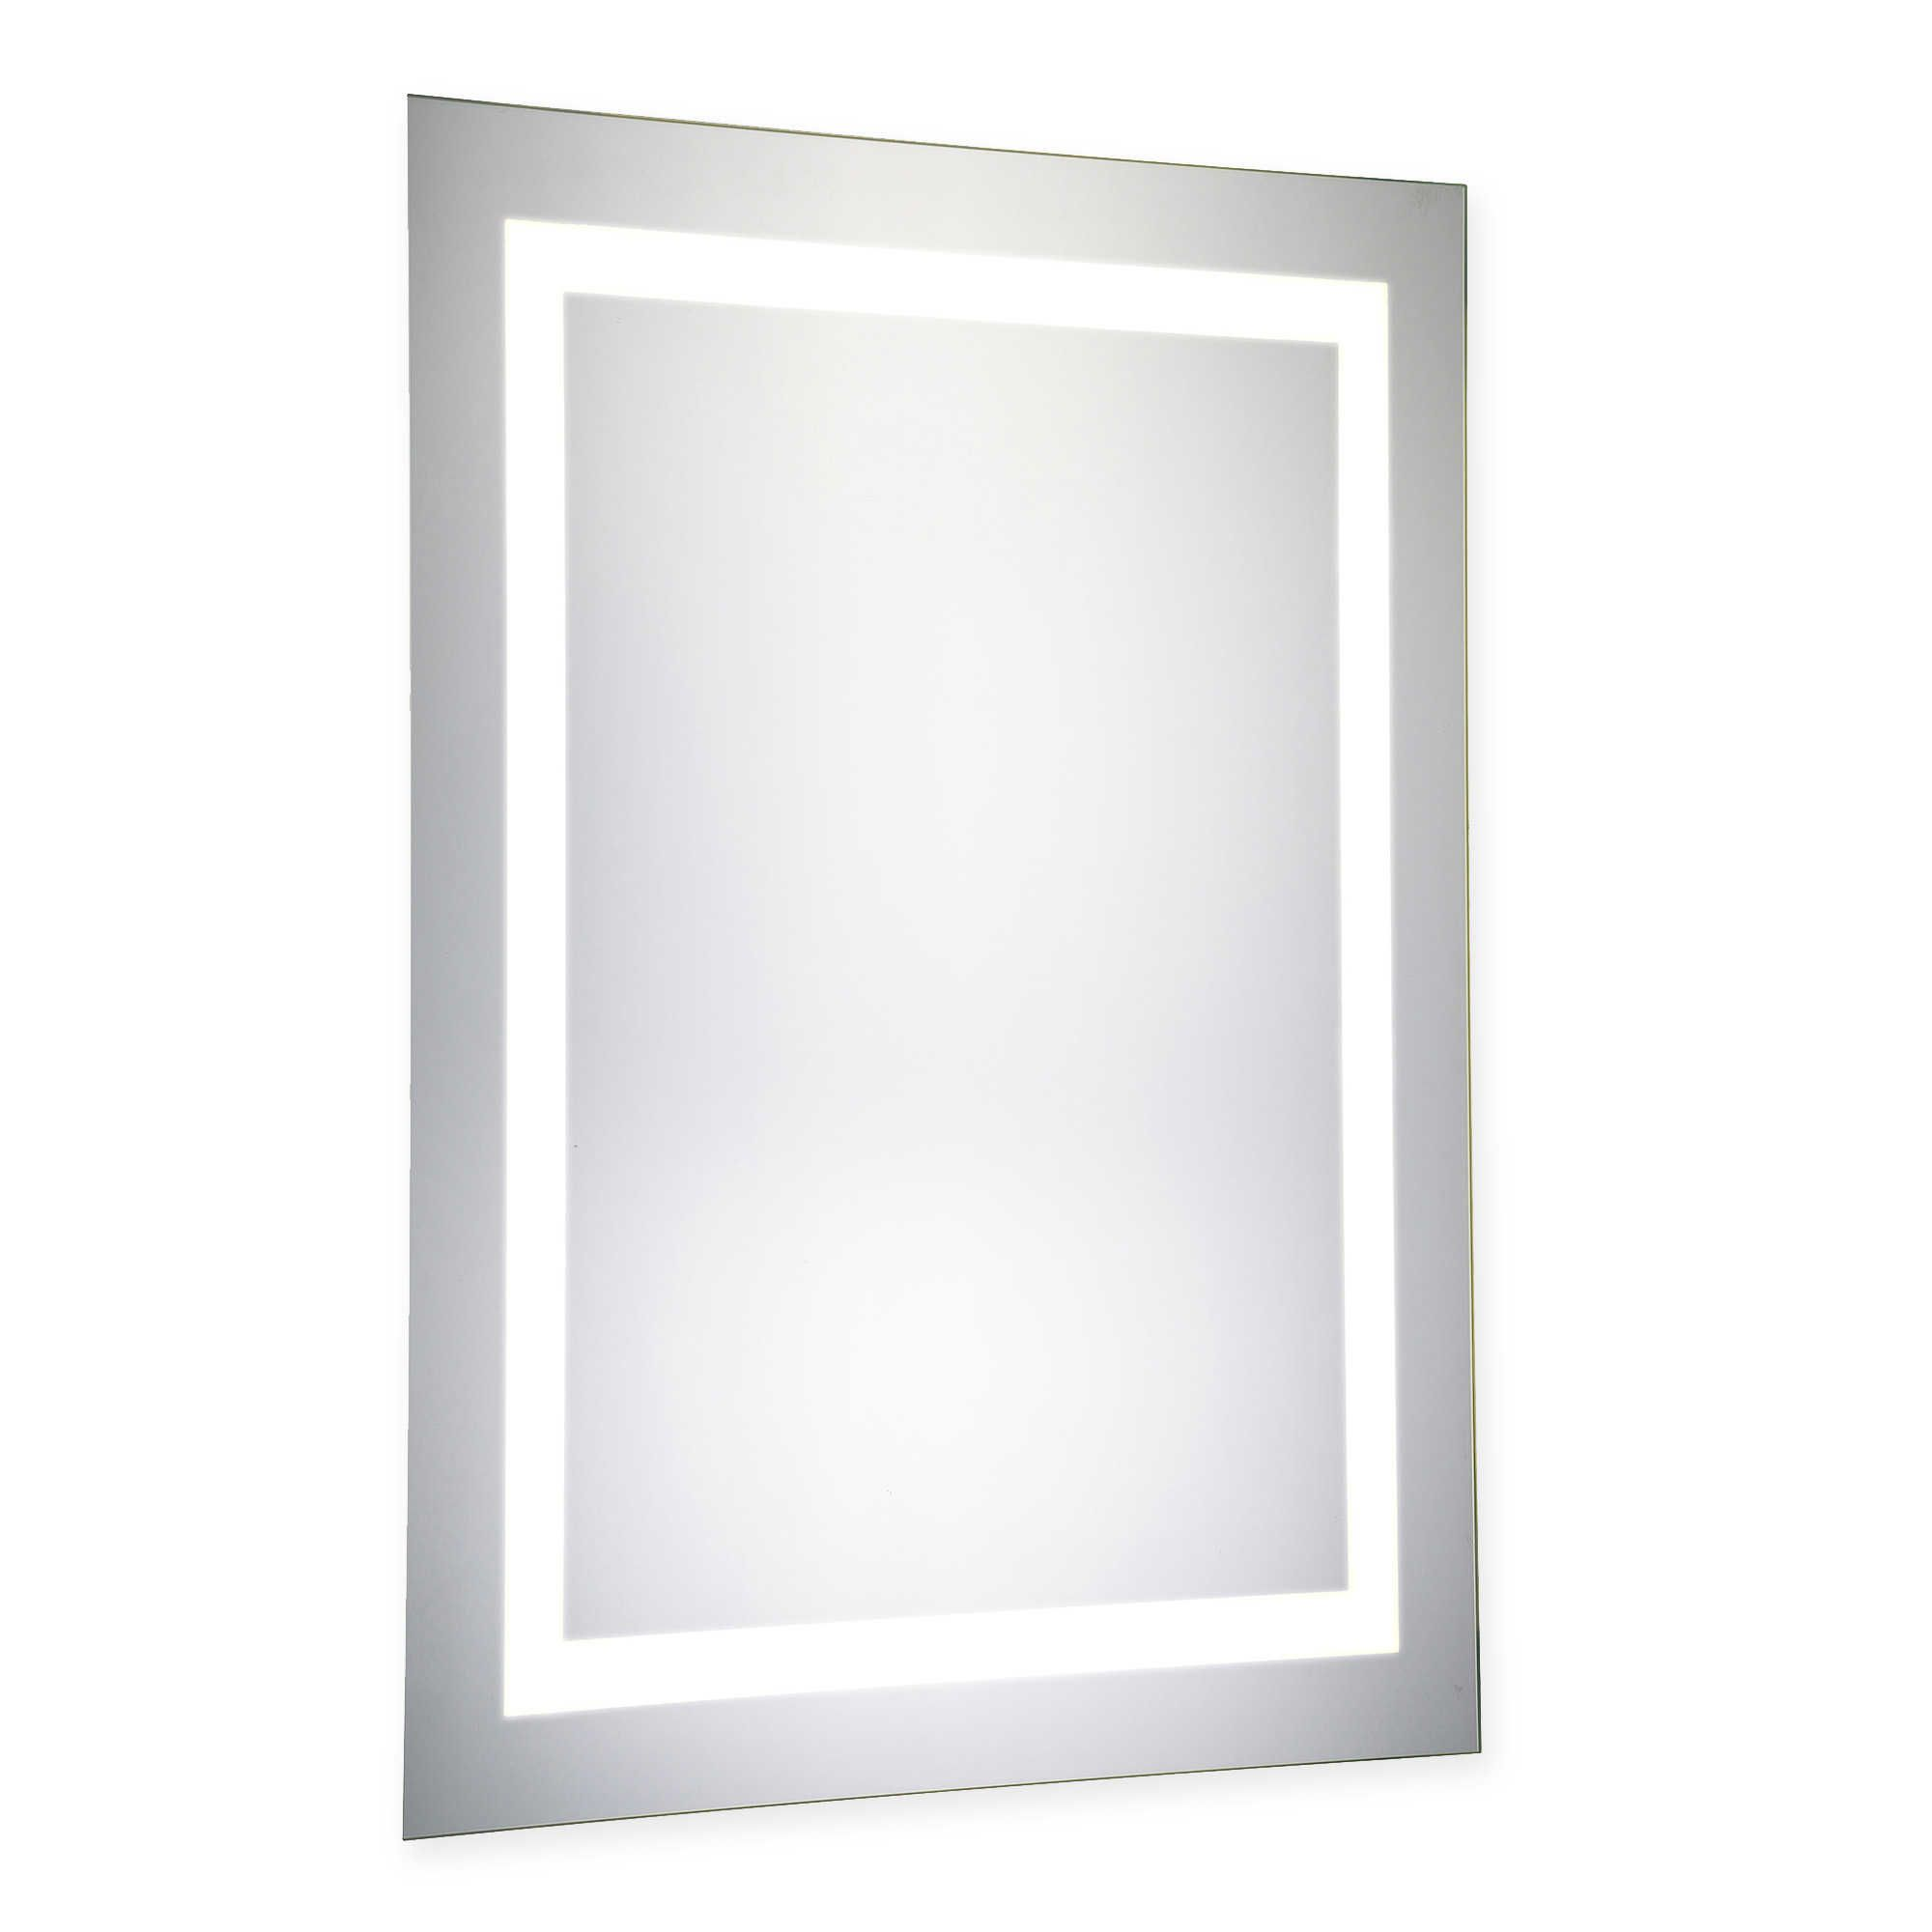 20-Inch x 40-Inch LED Lighted Mirror | Guest bathroom | Pinterest ...